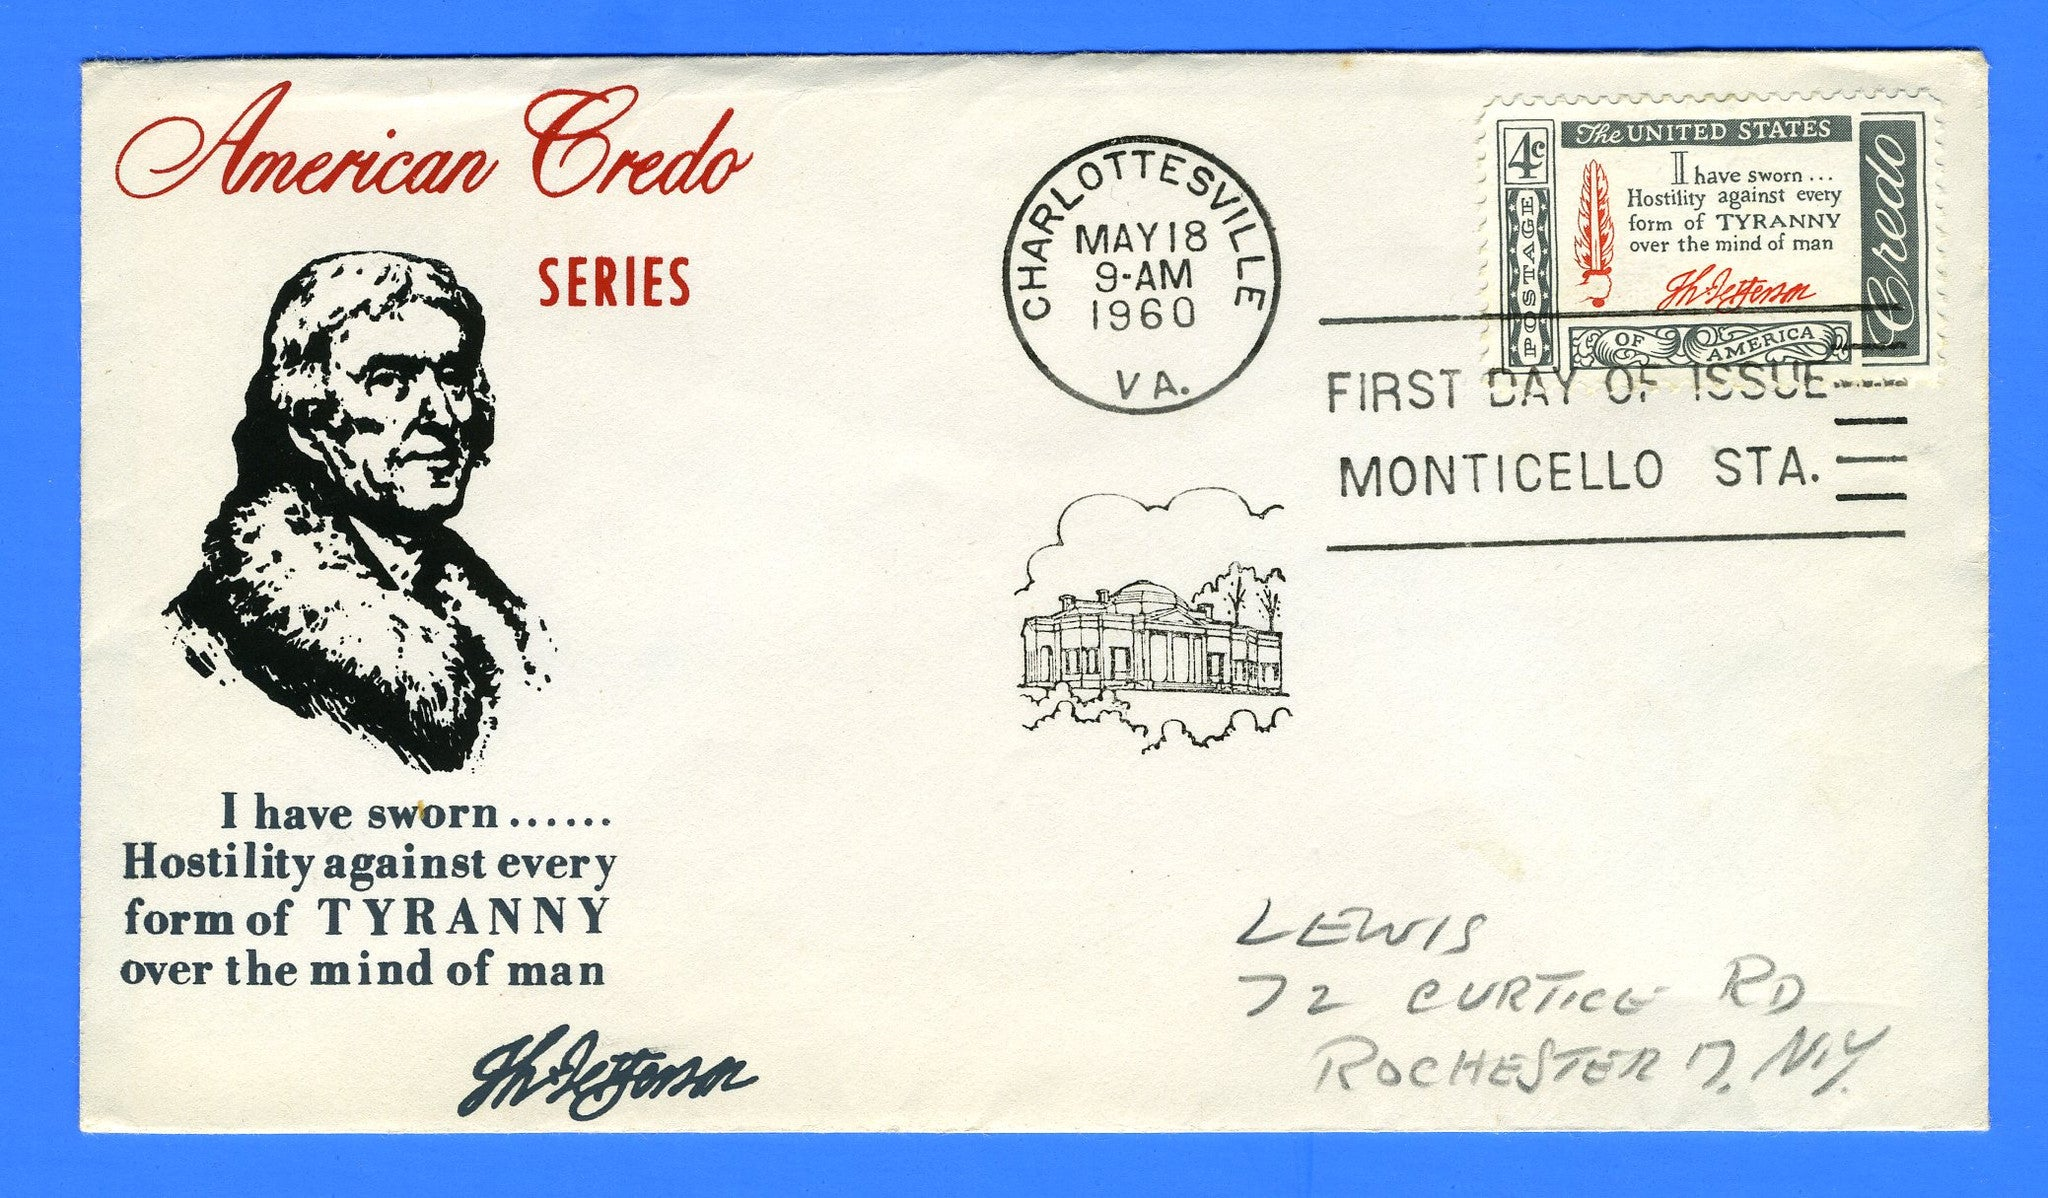 Scott 1141 Credo Thomas Jefferson Silk Screen First Day Cover by Eric Lewis - Very Rare - Only Five Known Copies